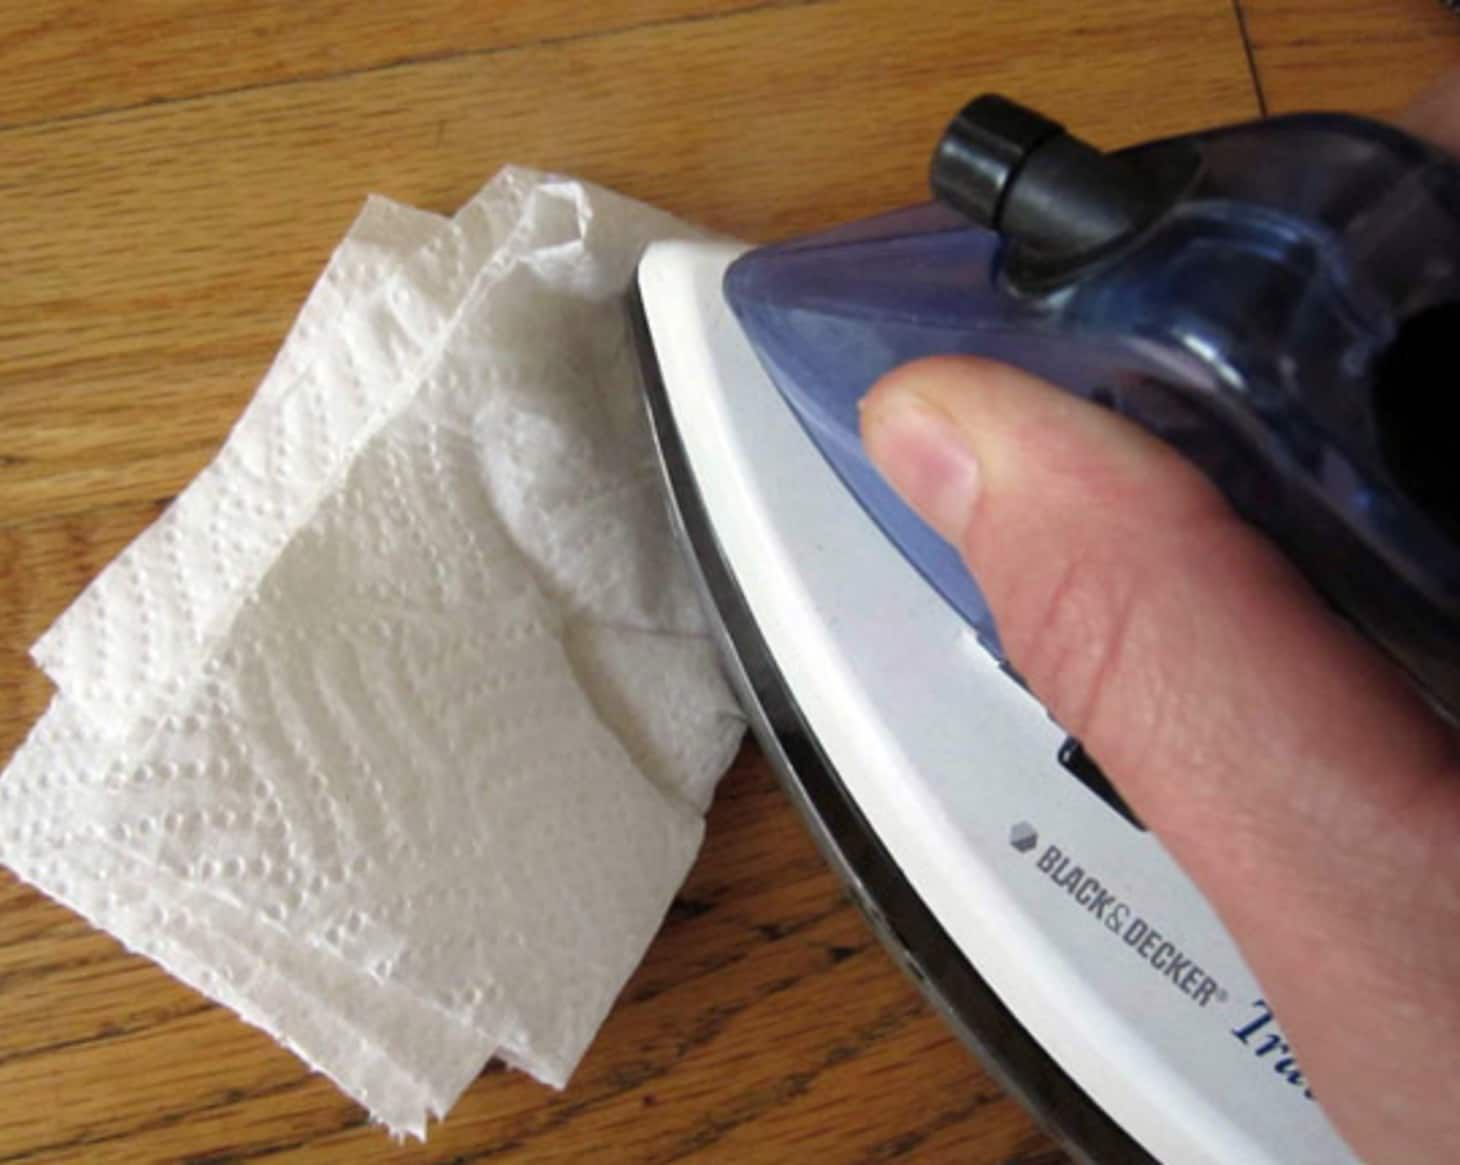 How to fix dents in wooden floors furniture with an